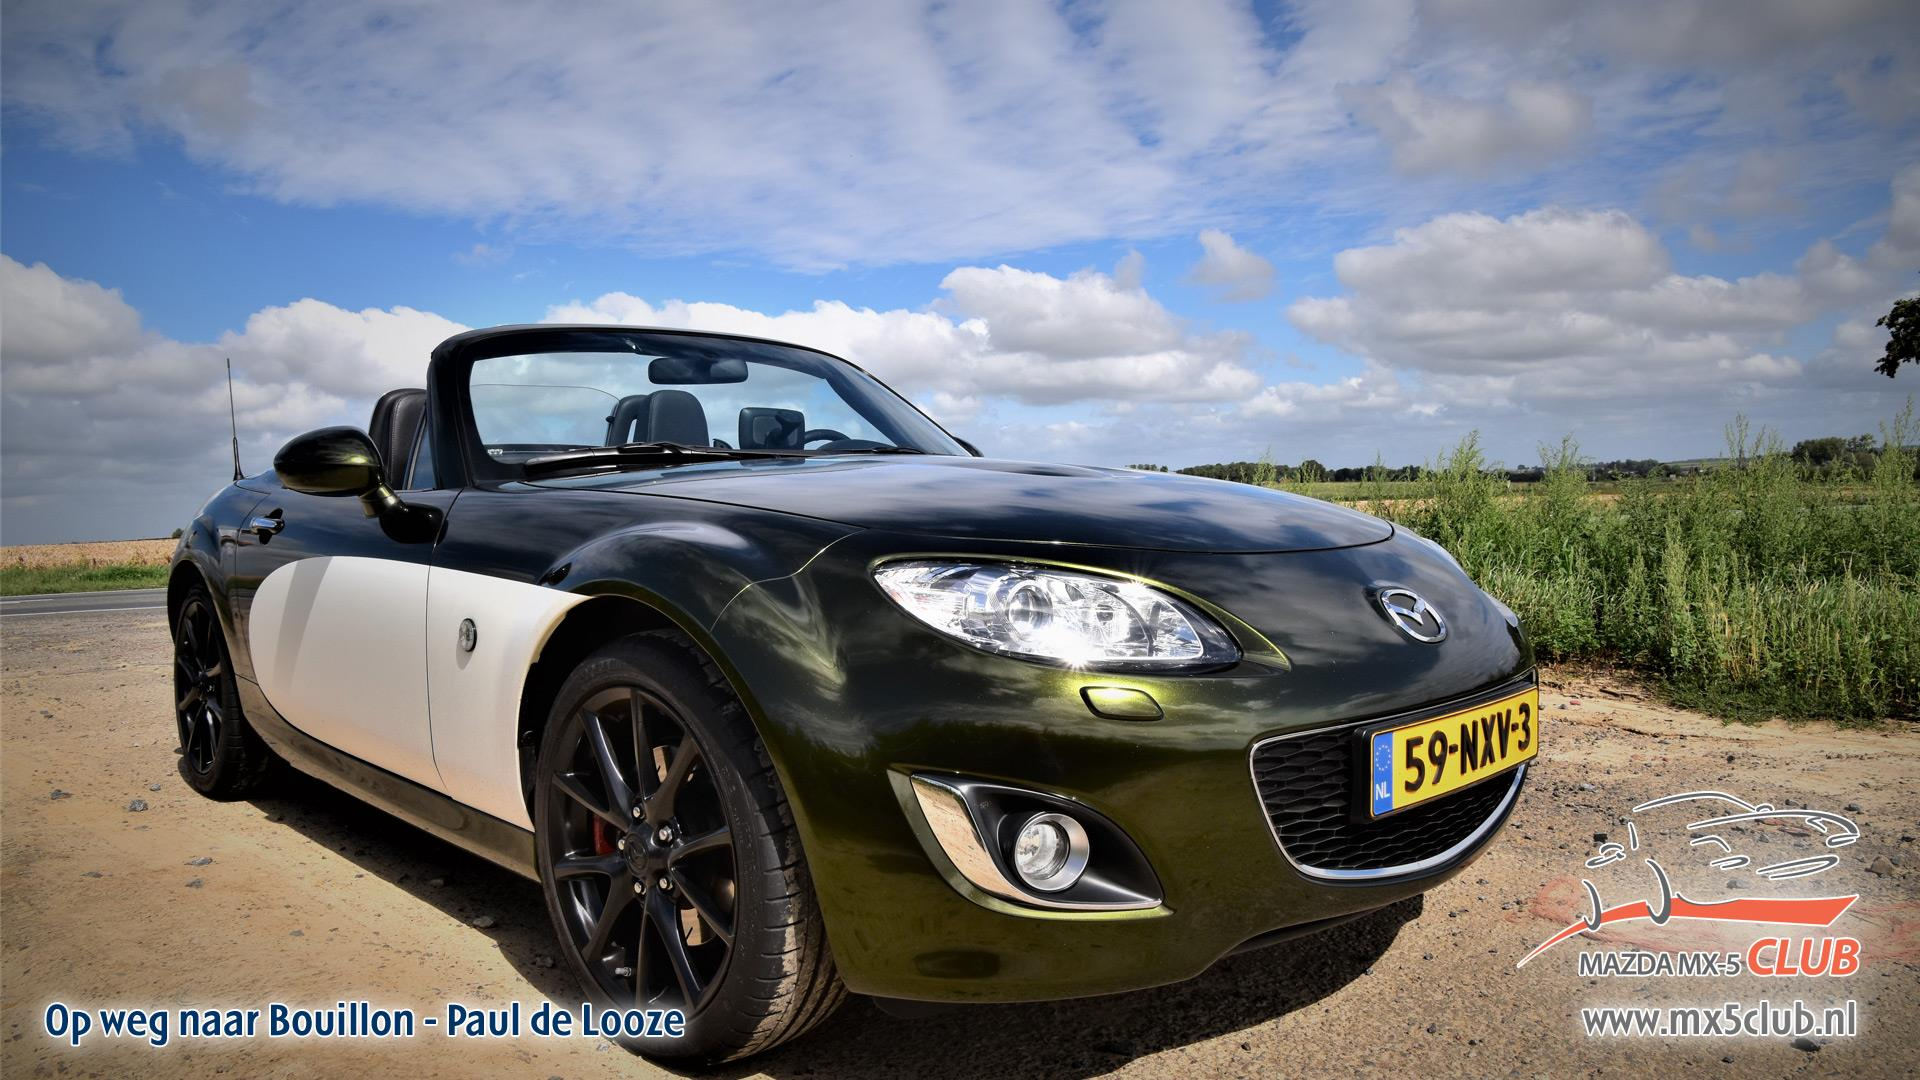 Wallpaper wedstrijd - Paul de Looze | Mazda MX-5 Club Nederland